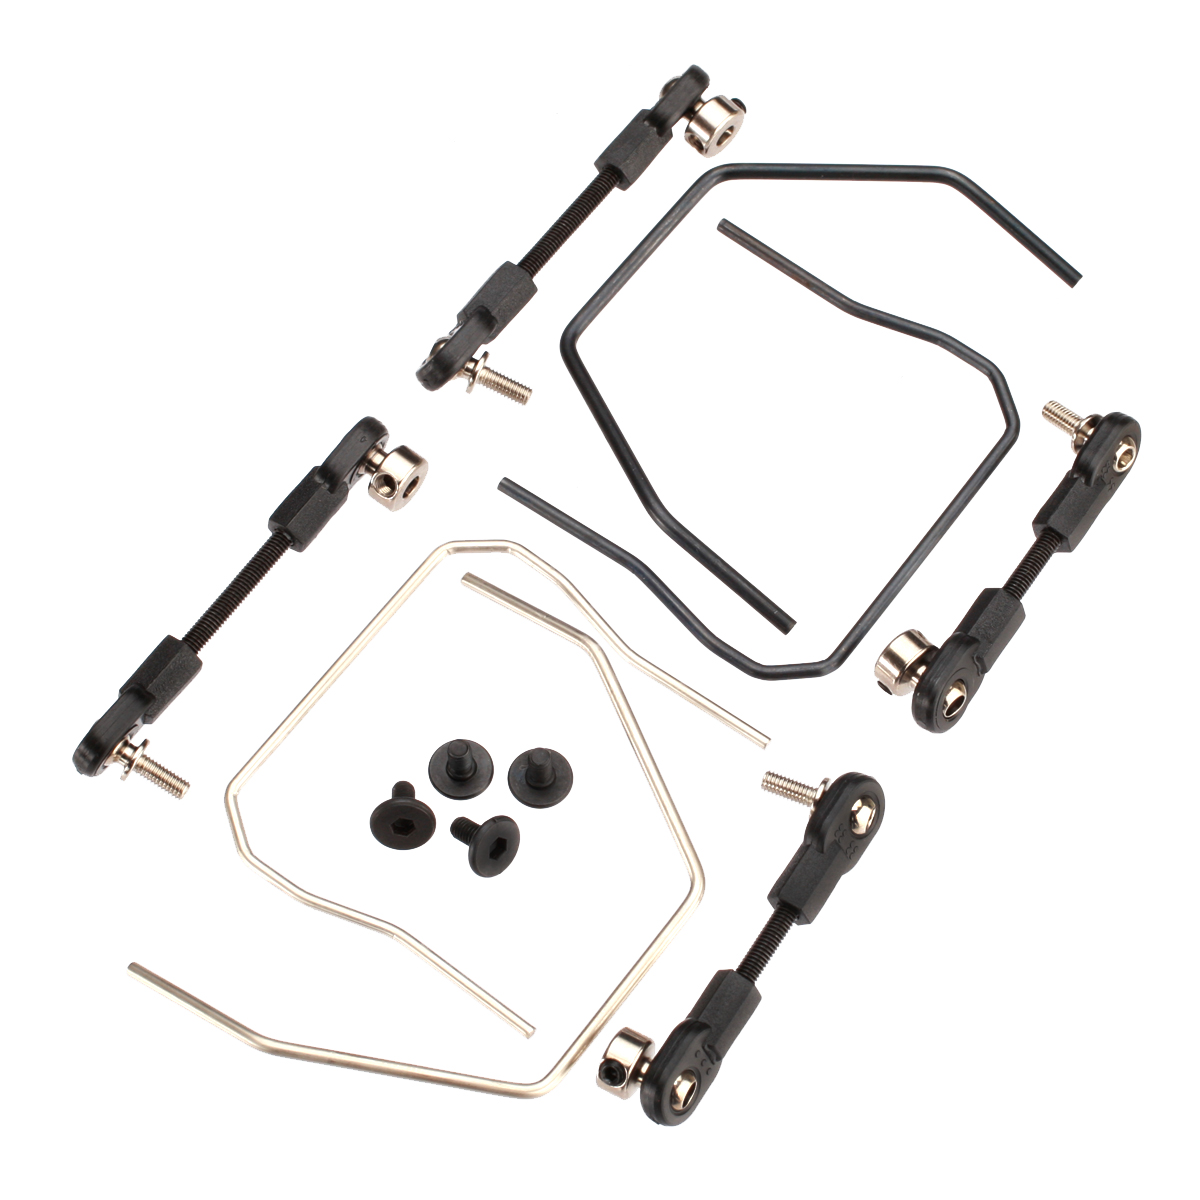 6898 TRAXXAS Remote Control Vehicle Stabilizer Bar For TRAXXAS SLASH